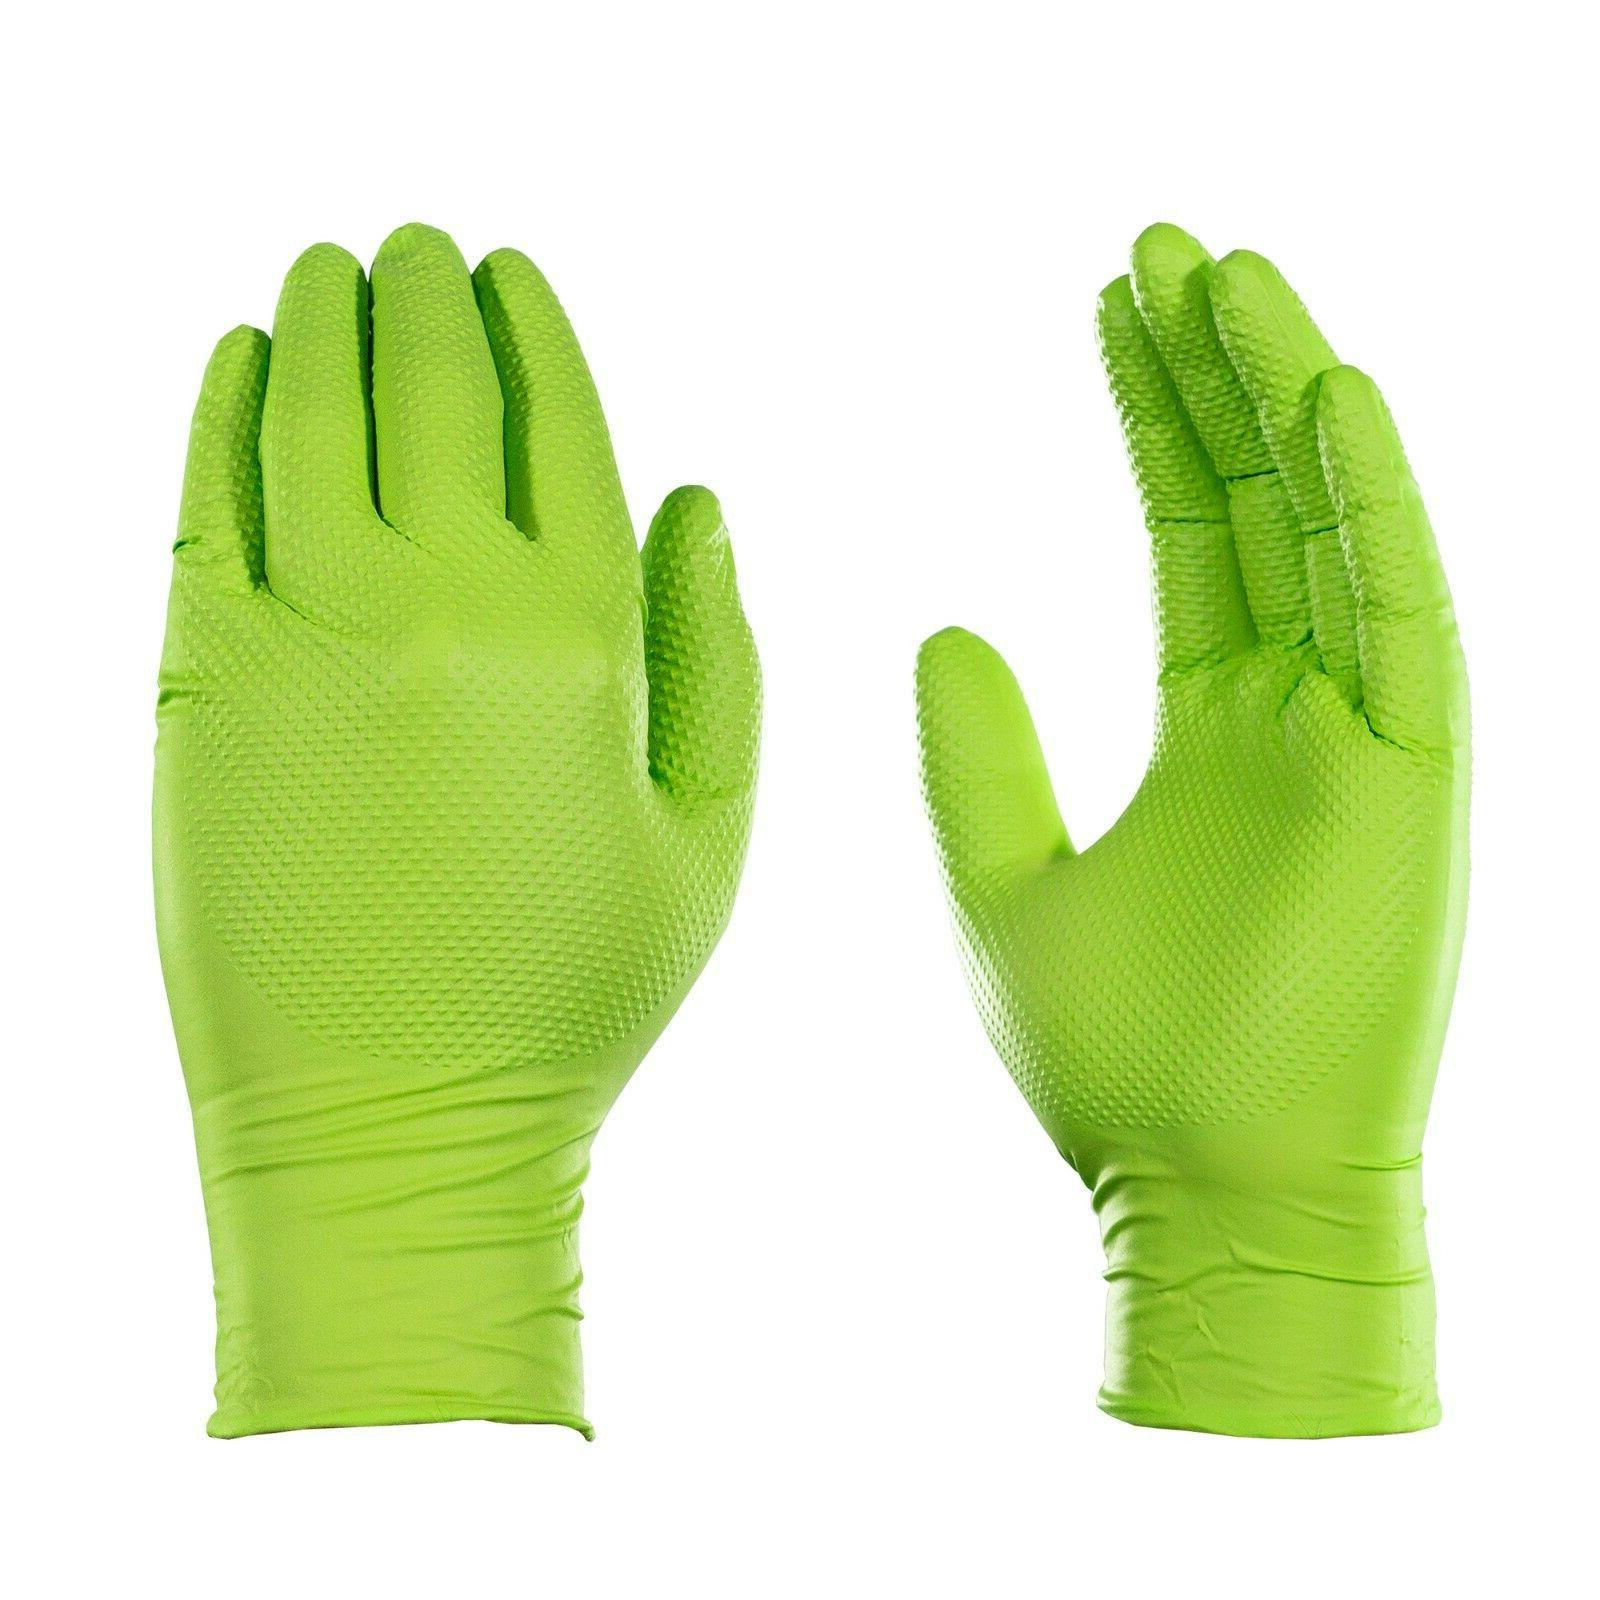 1000 Nitrile Industrial Free Gloves